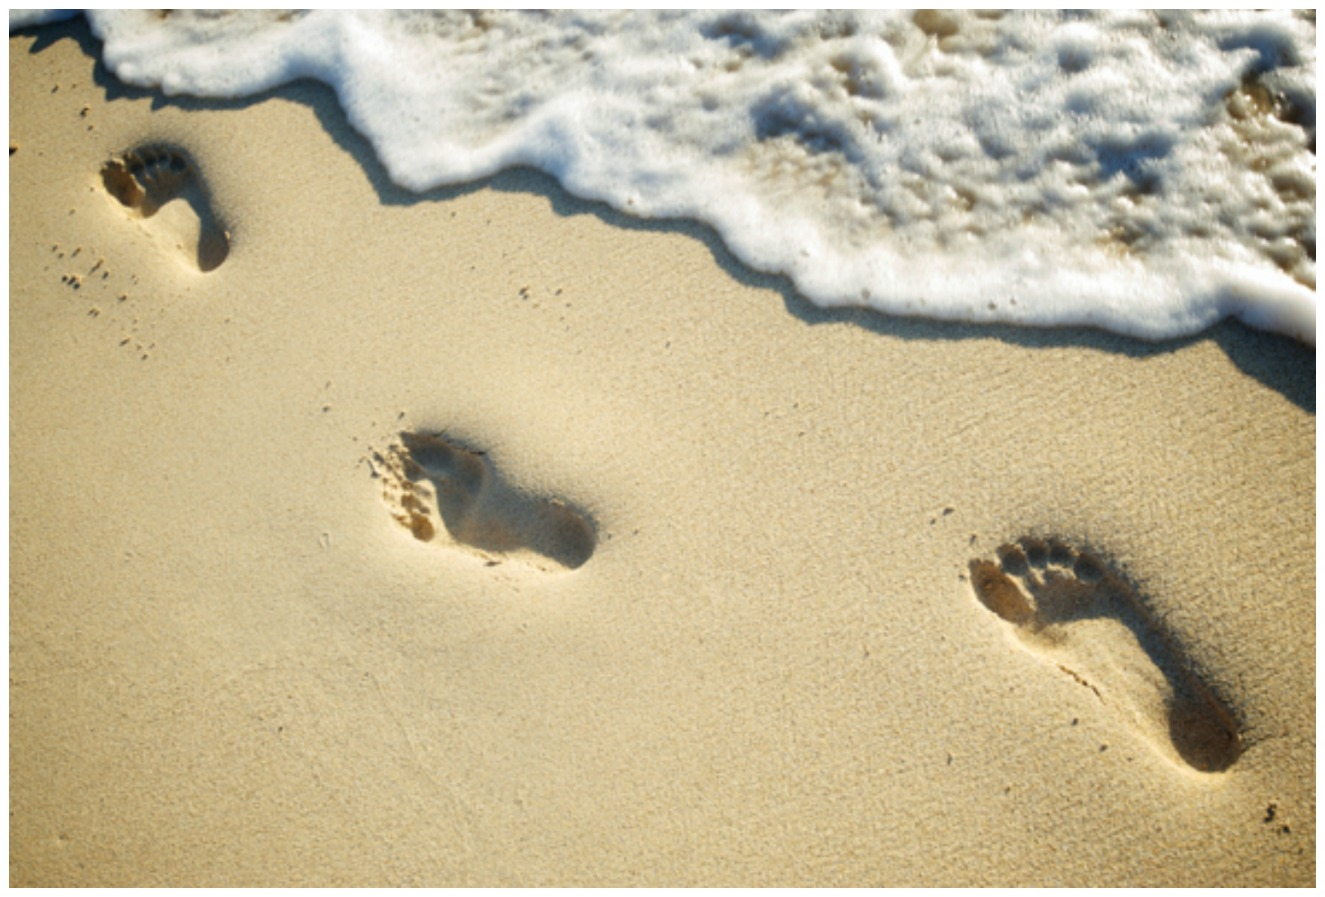 Let the power of example leave an impression in someone's life like footprints in the sand